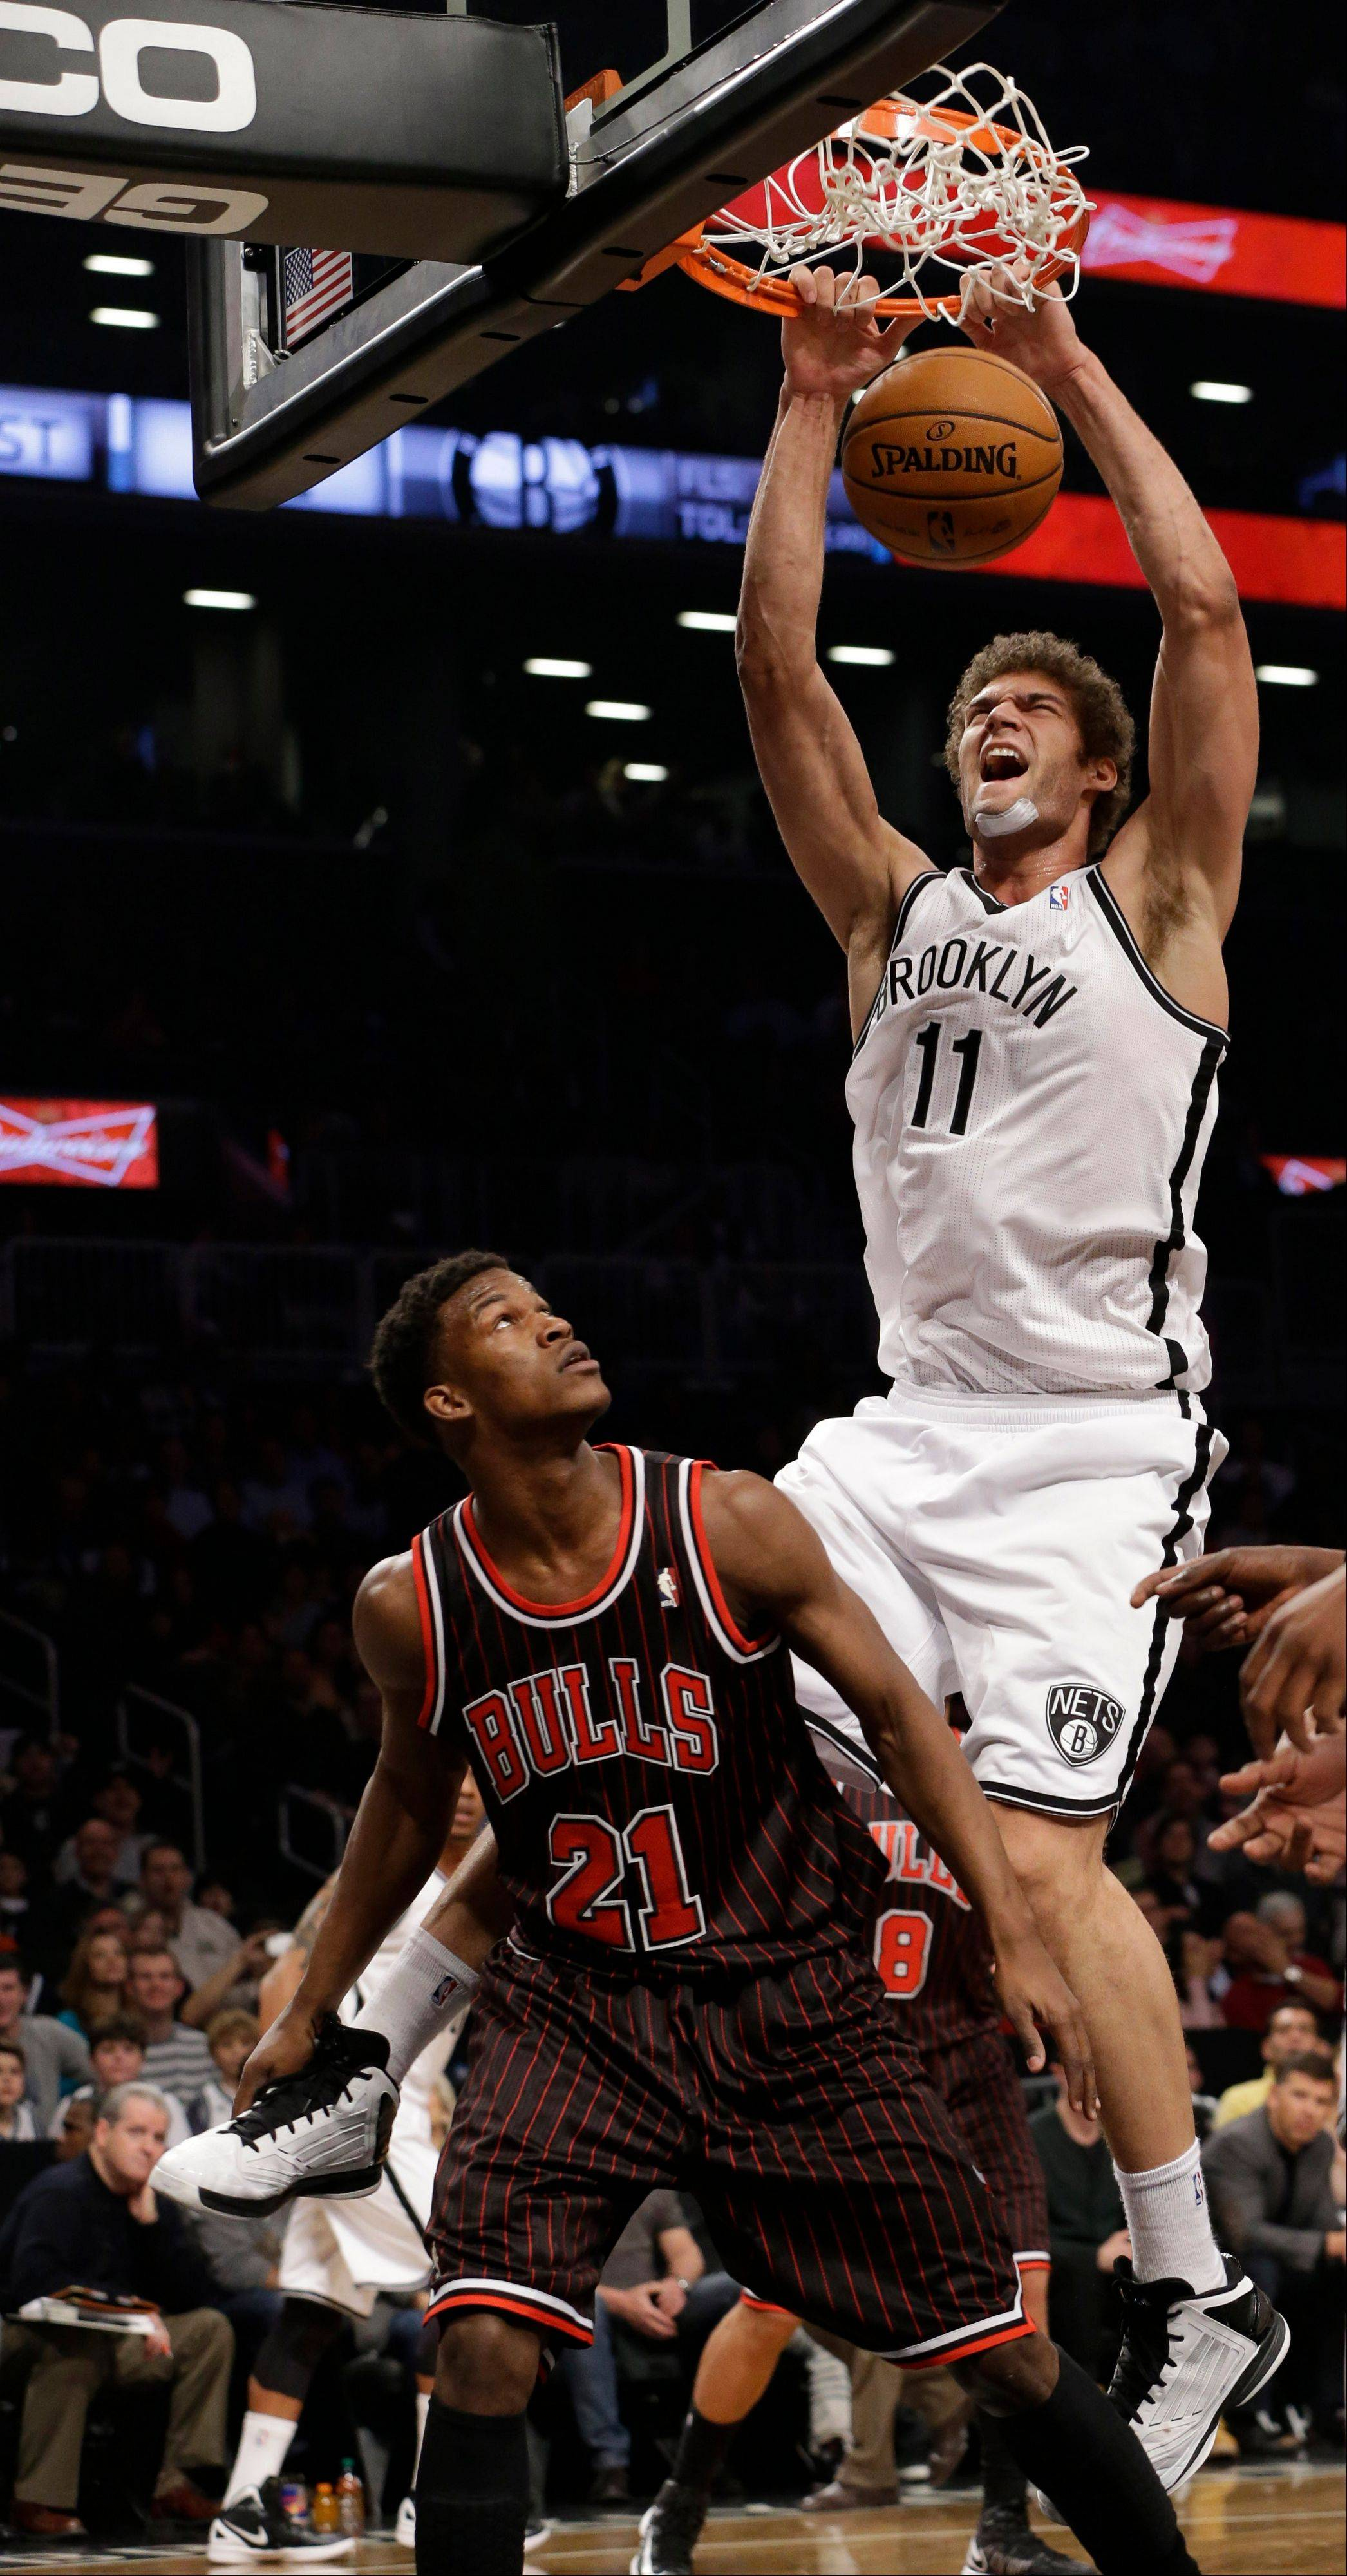 Brooklyn Nets center Brook Lopez, top, dunks over Chicago Bulls forward Jimmy Butler (21) in the first half of an NBA basketball game at the Barclays Center, Friday, Feb. 1, 2013,in New York.